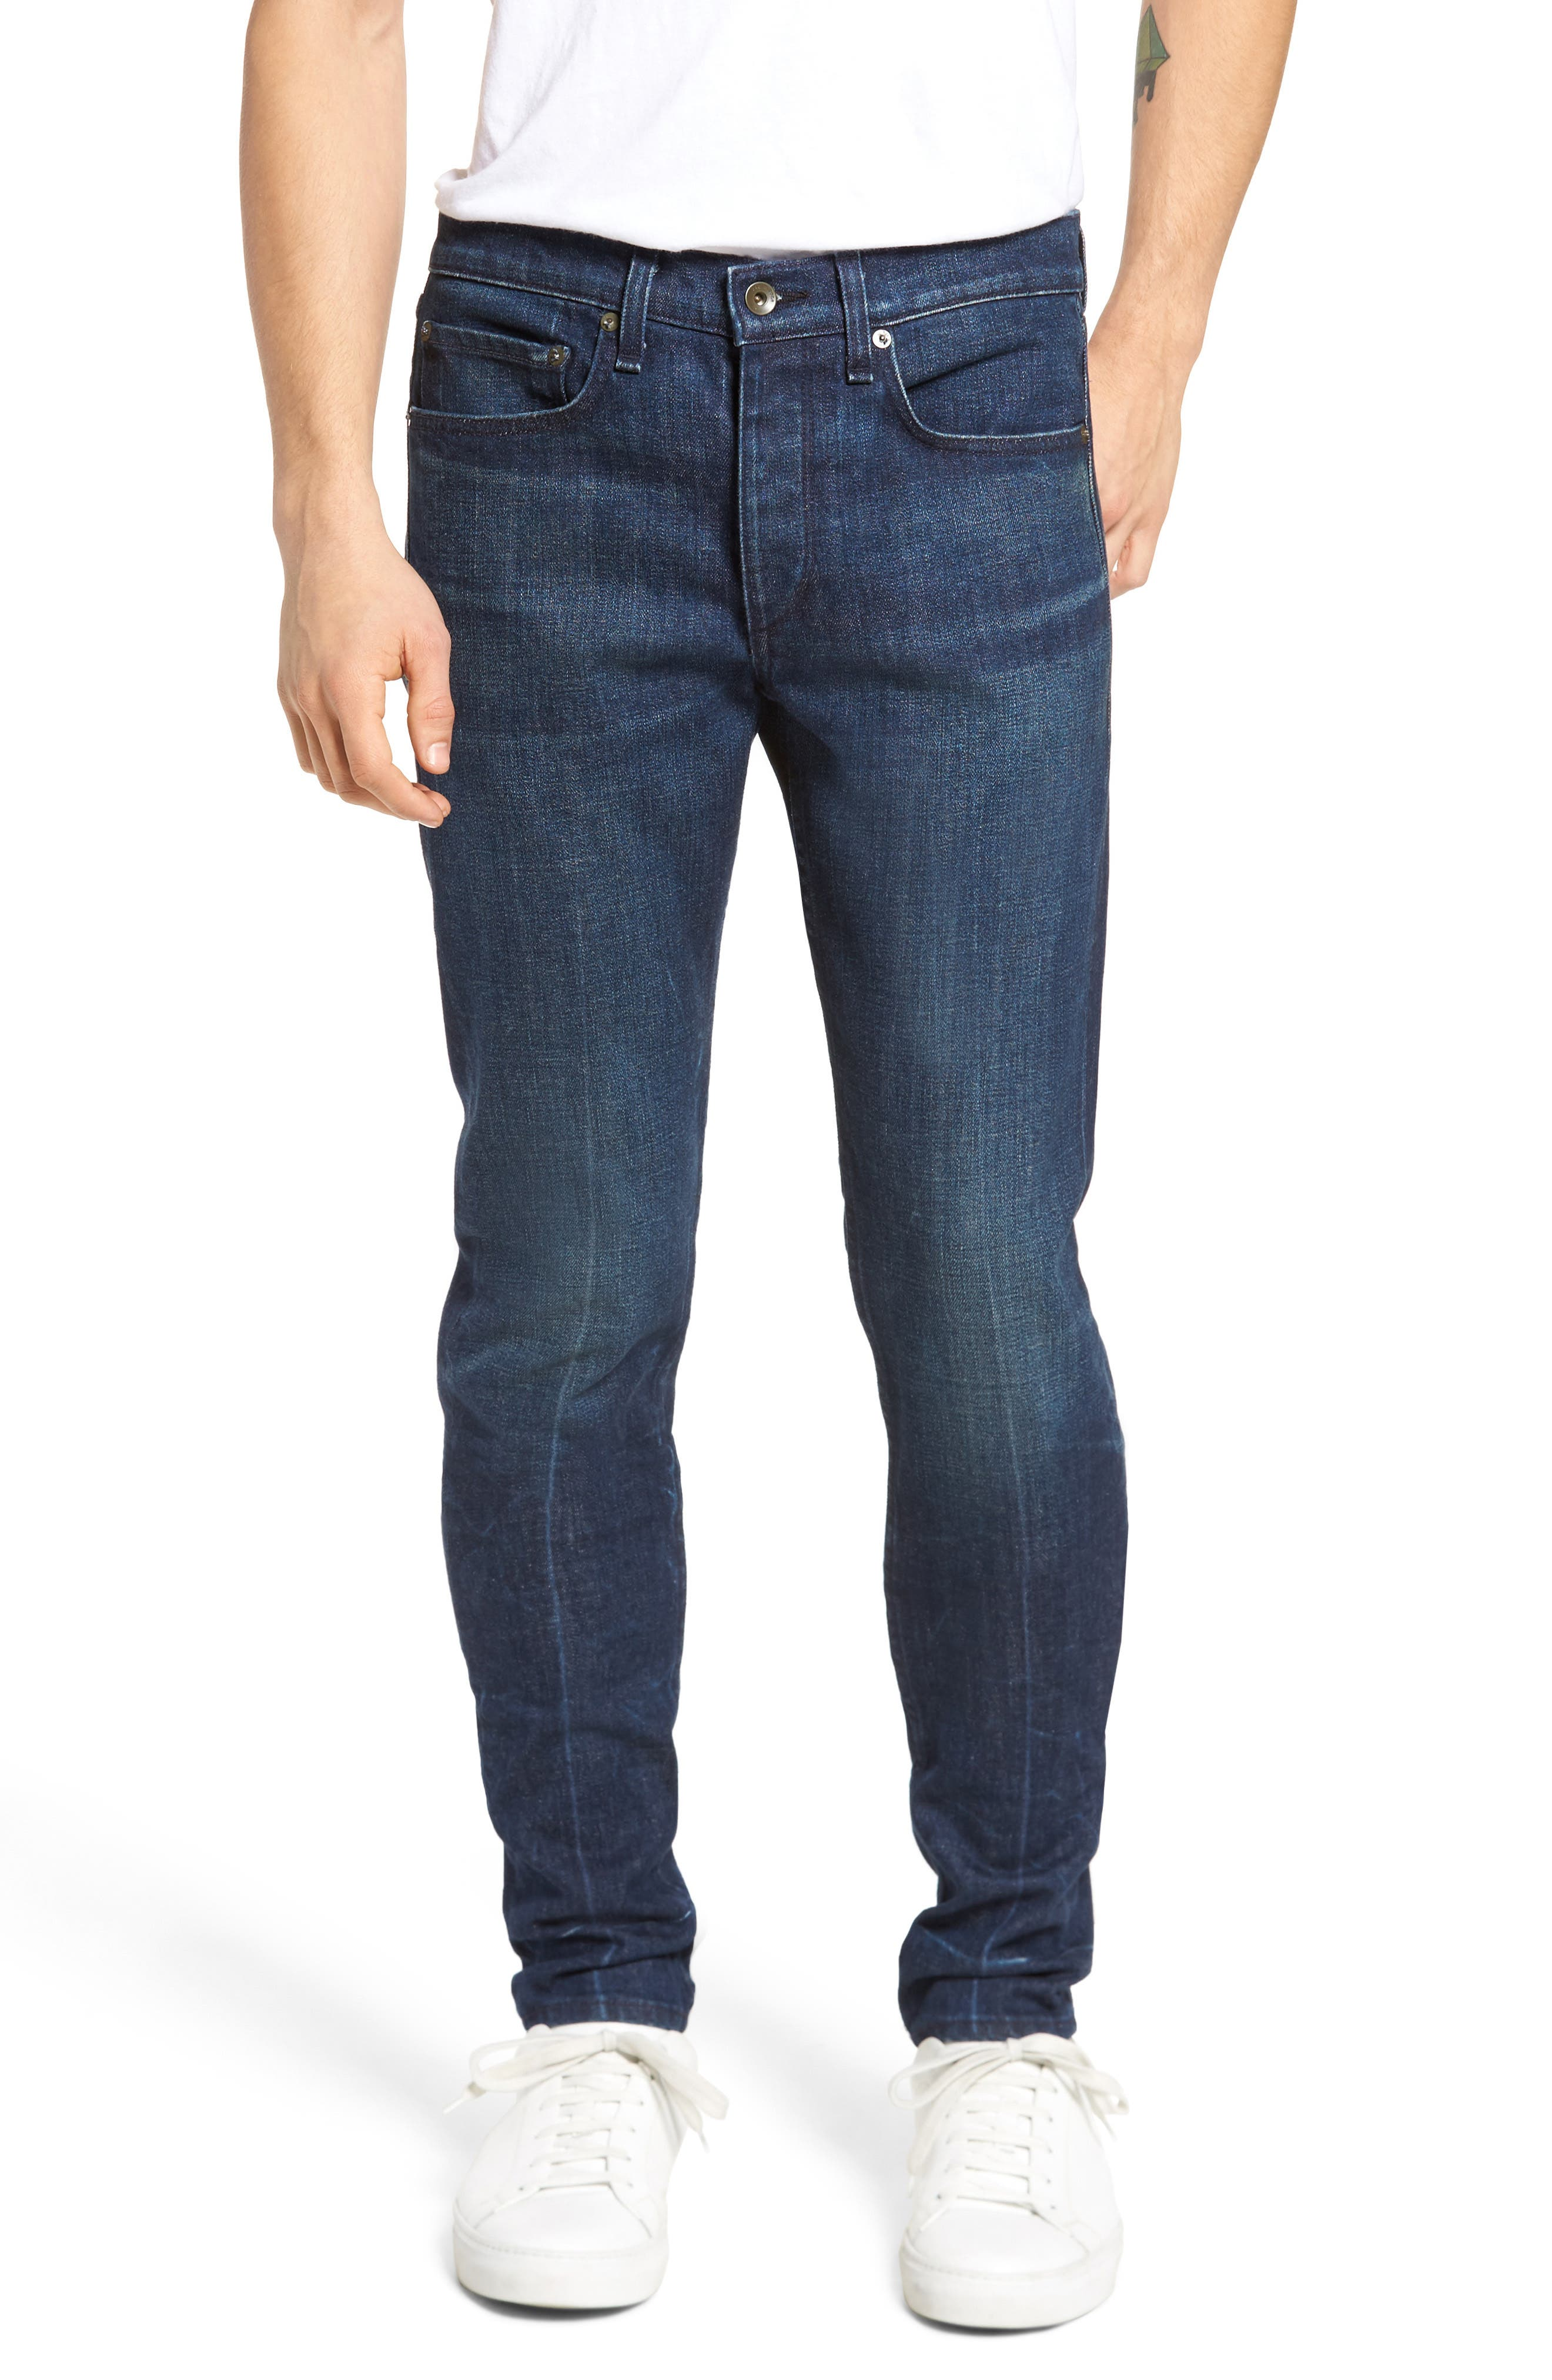 Fit 1 Skinny Fit Jeans,                             Main thumbnail 1, color,                             Snaps